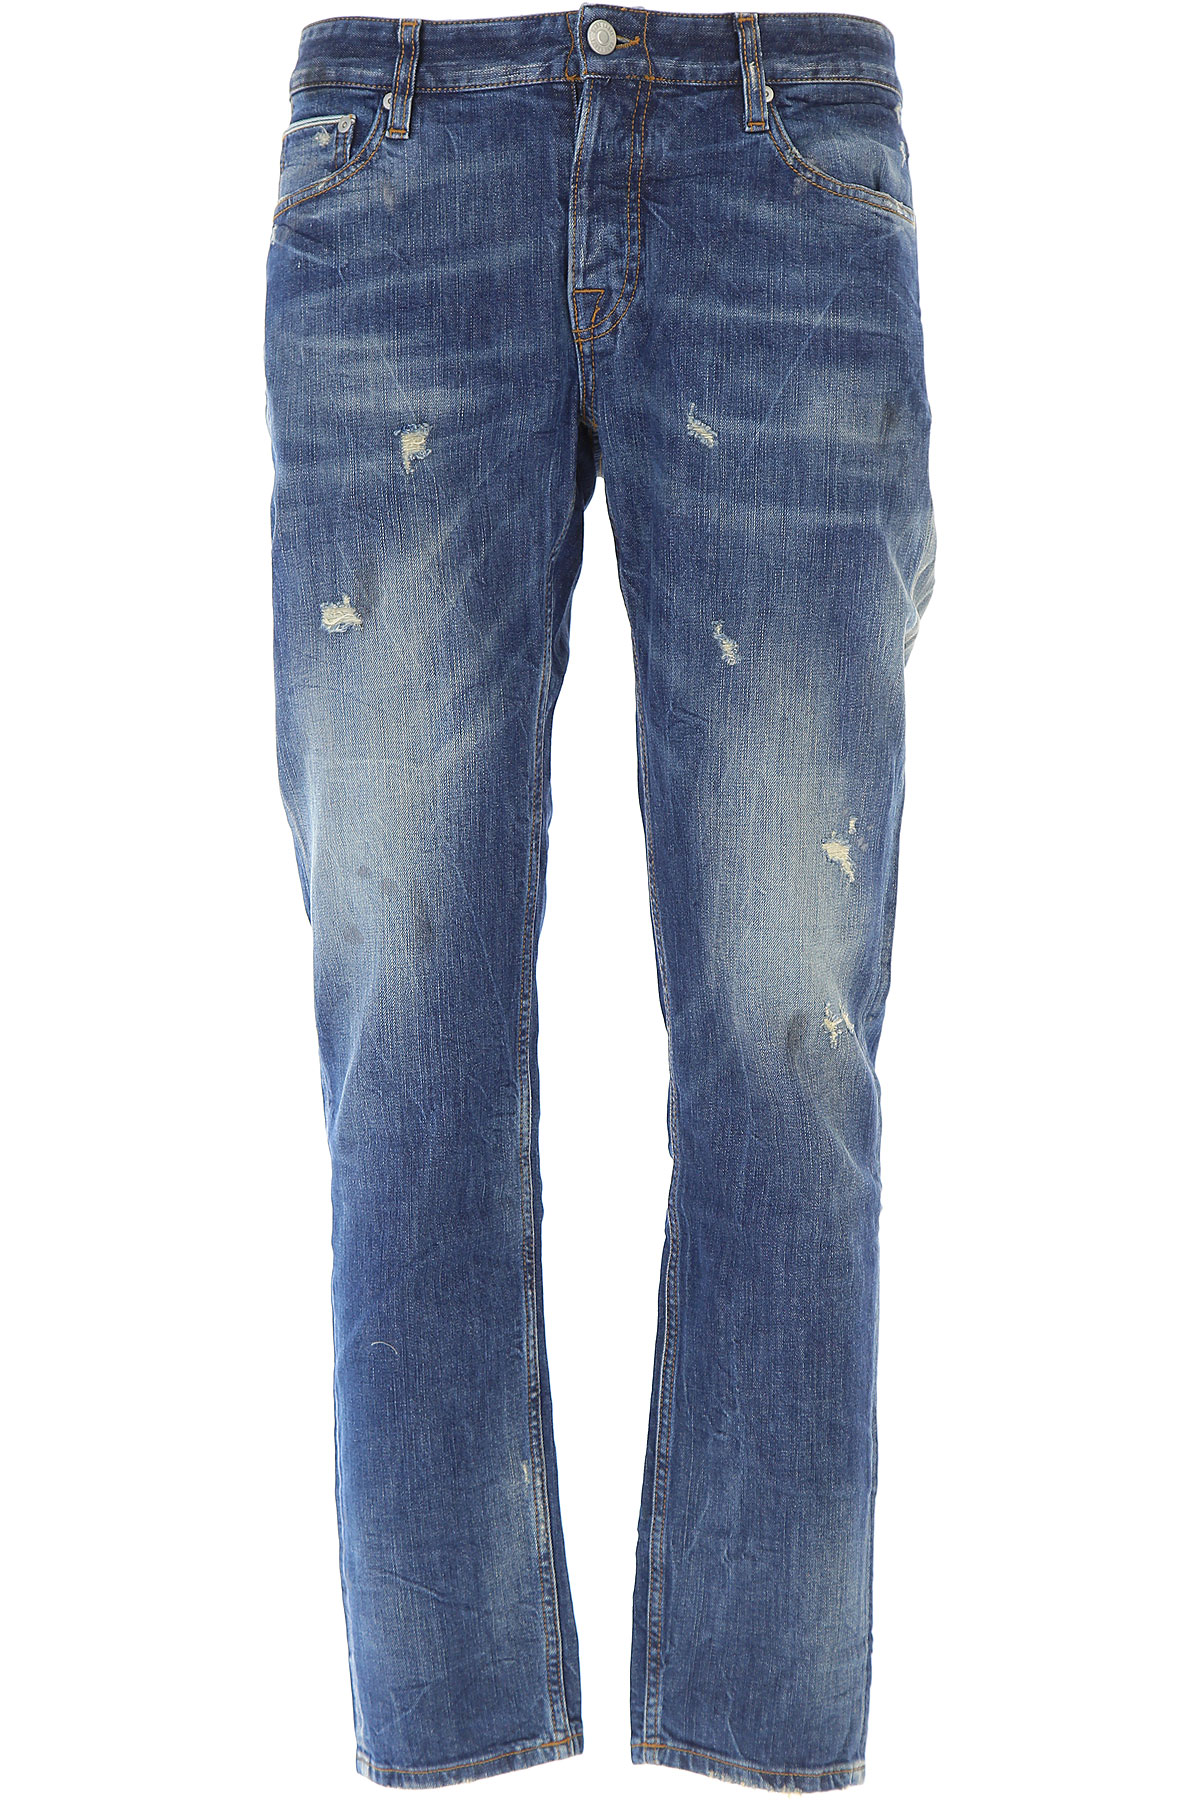 Care Label Jeans On Sale, Denim, Cotton, 2017, Waist 30 inches - Lenght 32 in Waist 31 inches - Lenght 32 in Waist 32 inches - Lenght 32 in Waist 33 inches - Lenght 32 in Waist 34 inches - Lenght 32 i